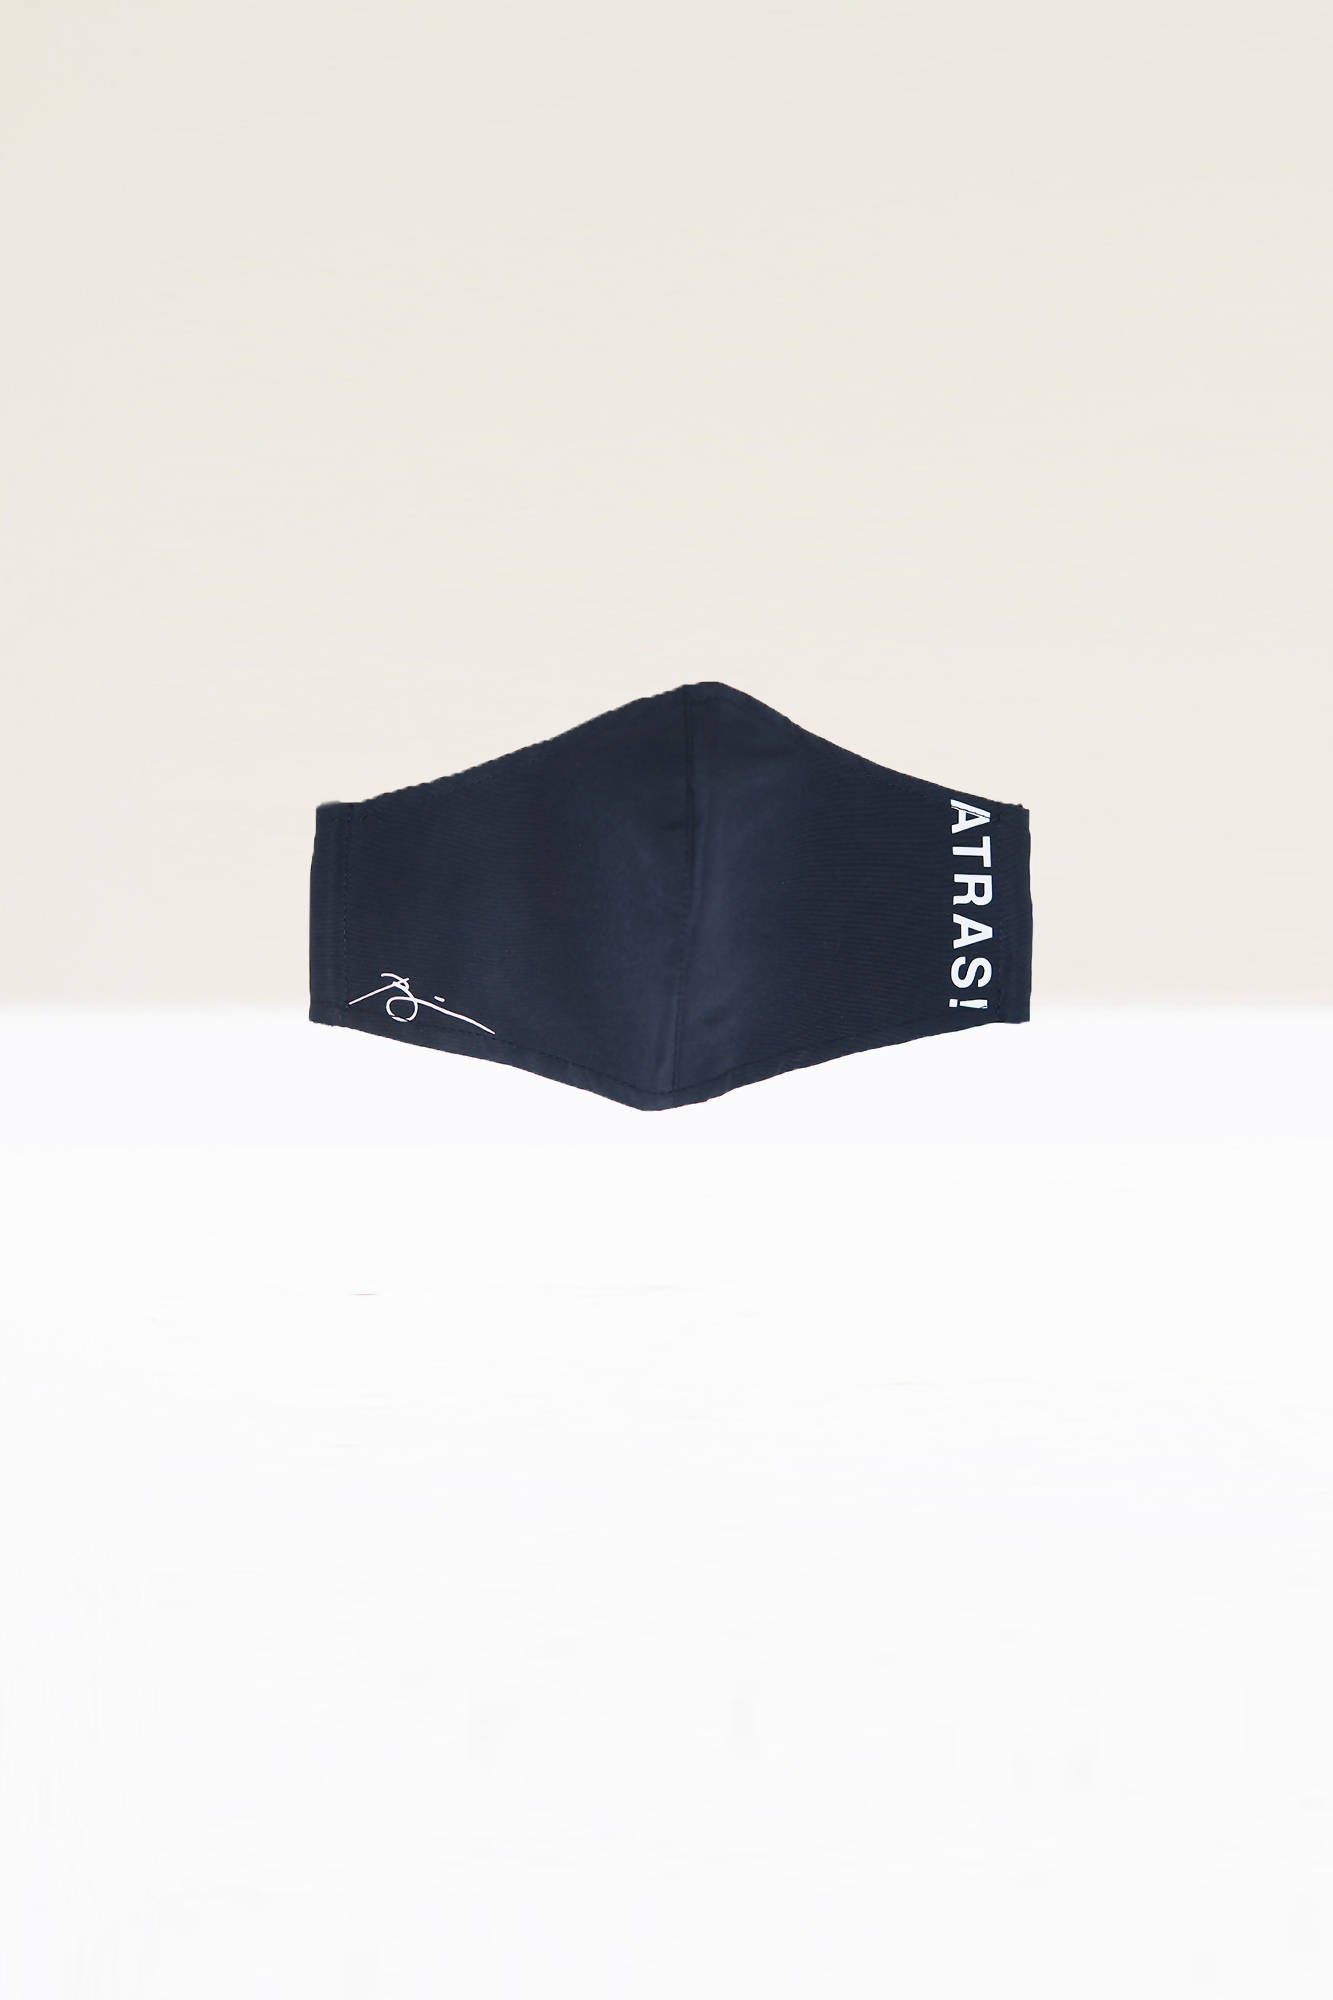 POW Facemask (ATRAS) in Navy